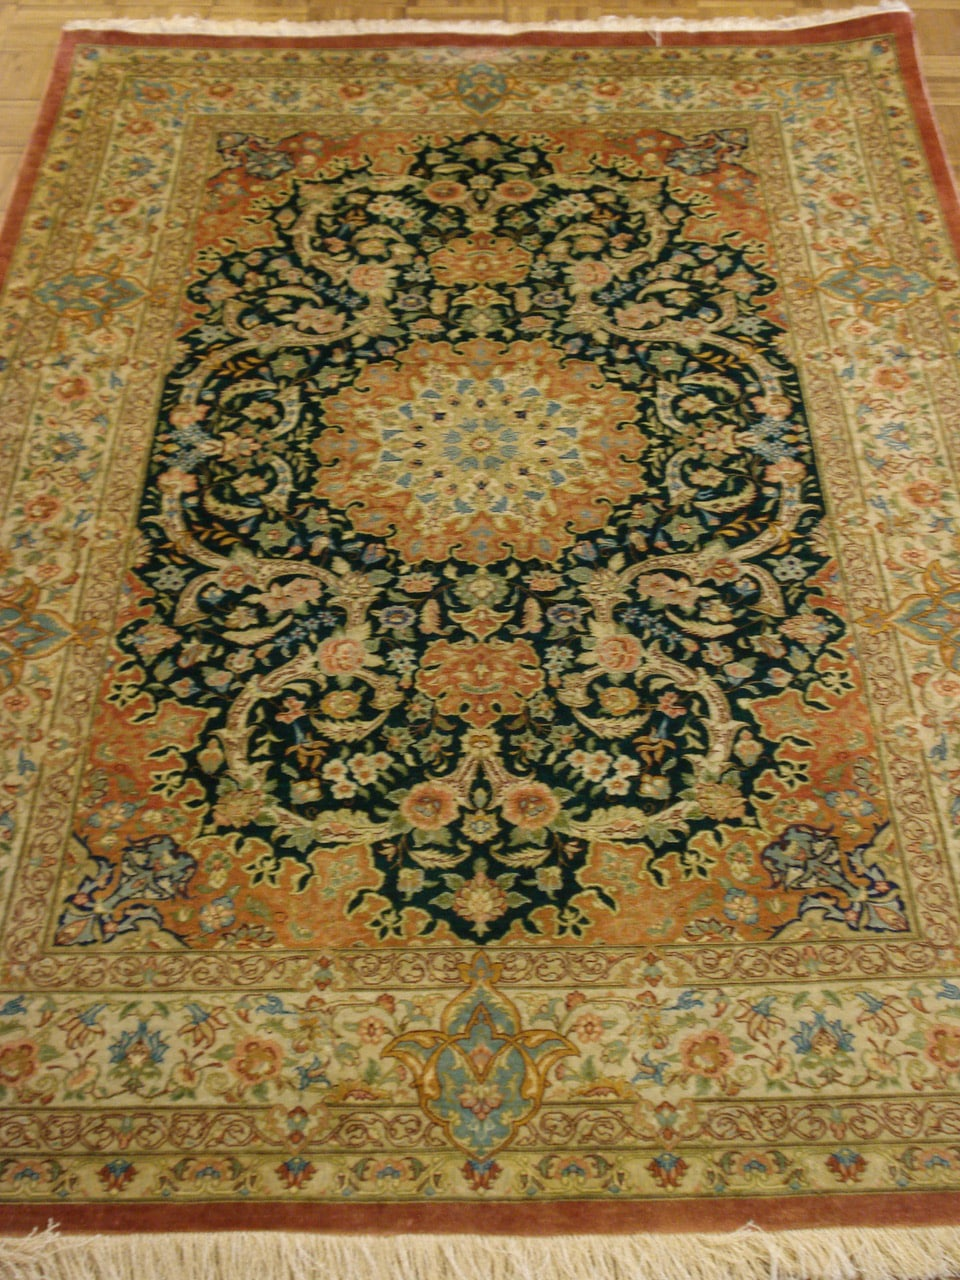 oriental rugs birmingham with Very Fine Qum 24908 on 923718 as well Martial Arts Megastars From Spirit2power besides Ardabil Carpet additionally Very Fine Qum 24908 likewise Carpet Cleaning Services Raleigh Nc.